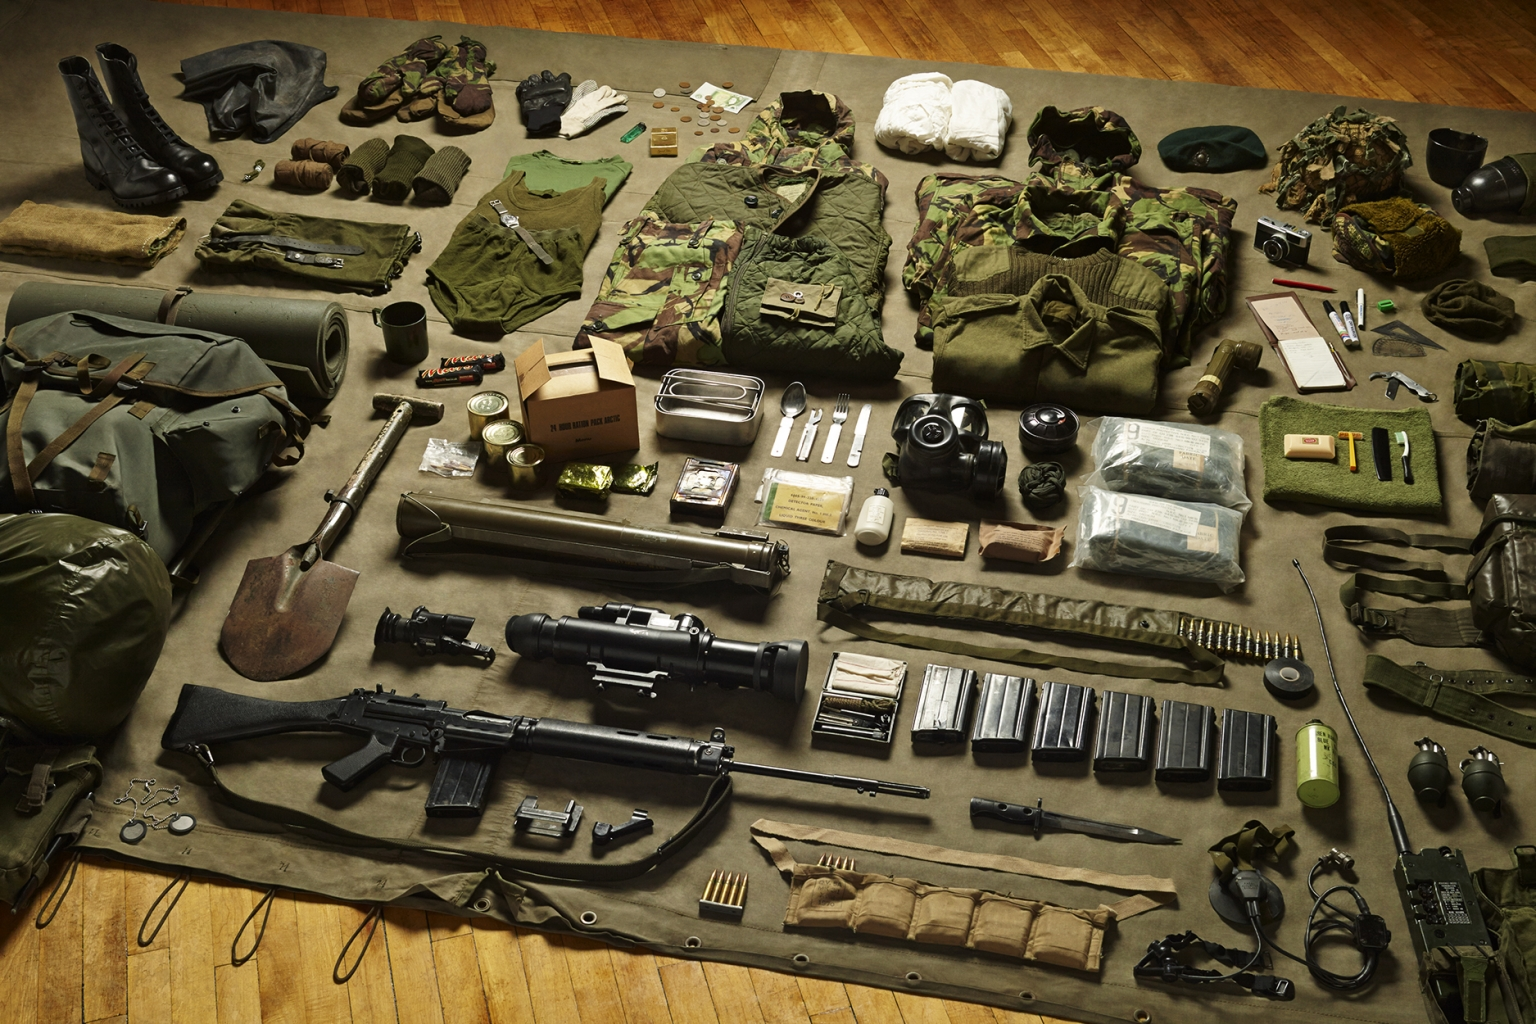 Royal Marine Commando, Falklands Conflict, 1982 - Soldiers' Inventories - Photo by Thom Atkinson